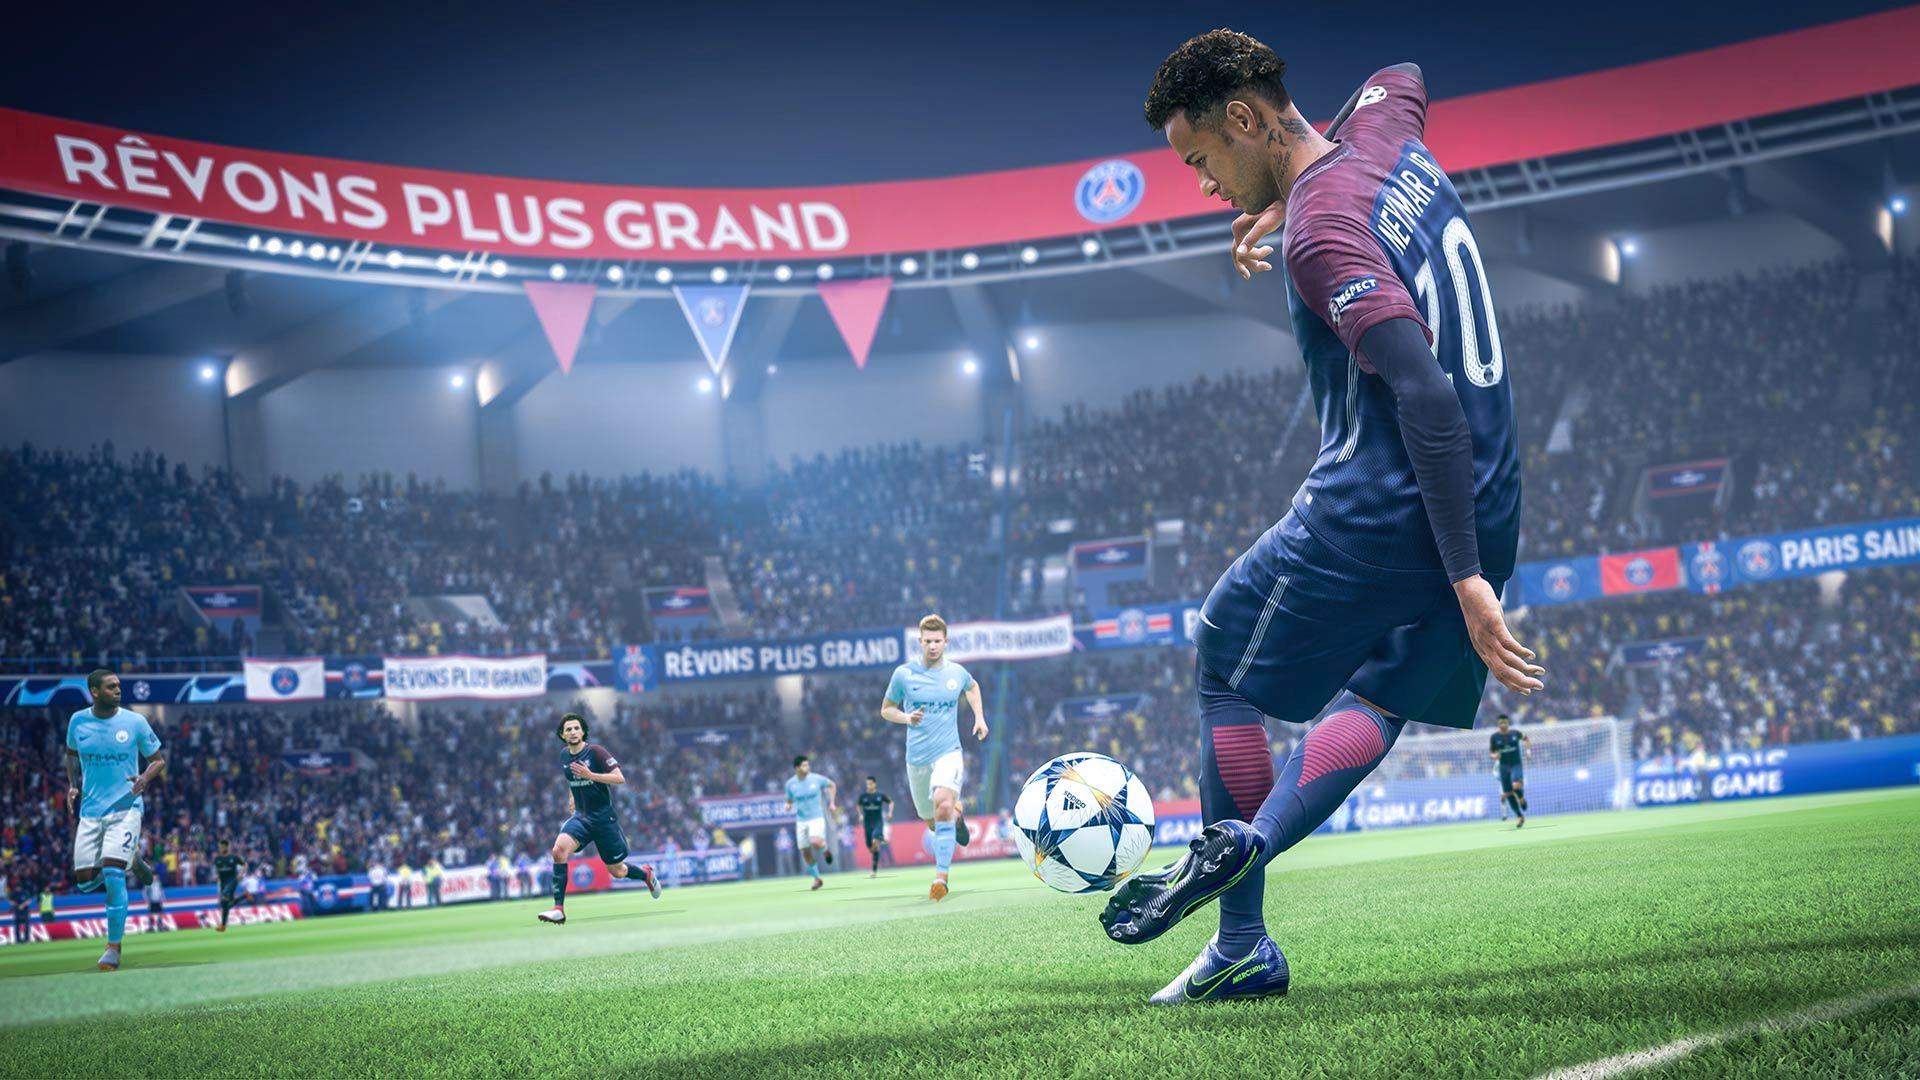 FIFA 19 tips and tricks: 10 ways to get better at the game